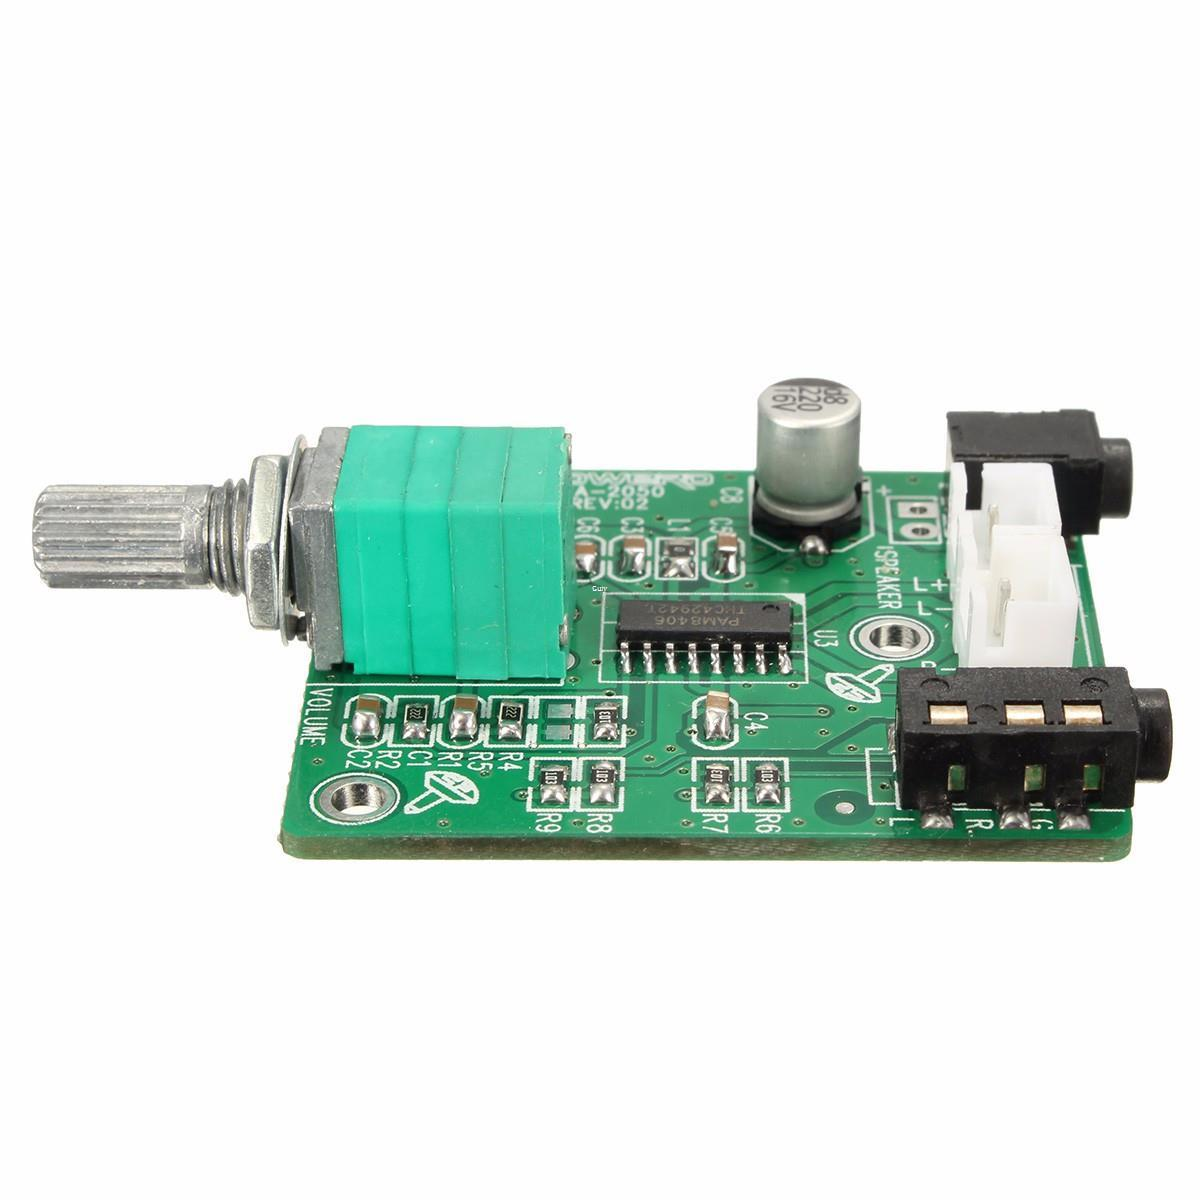 Electronic Circuit Board Pam8406 Digital Class D Audio Power Electrical Boards Popular Freeshipping Amplifier Stereo Assembled 2 Channel 5w Amp